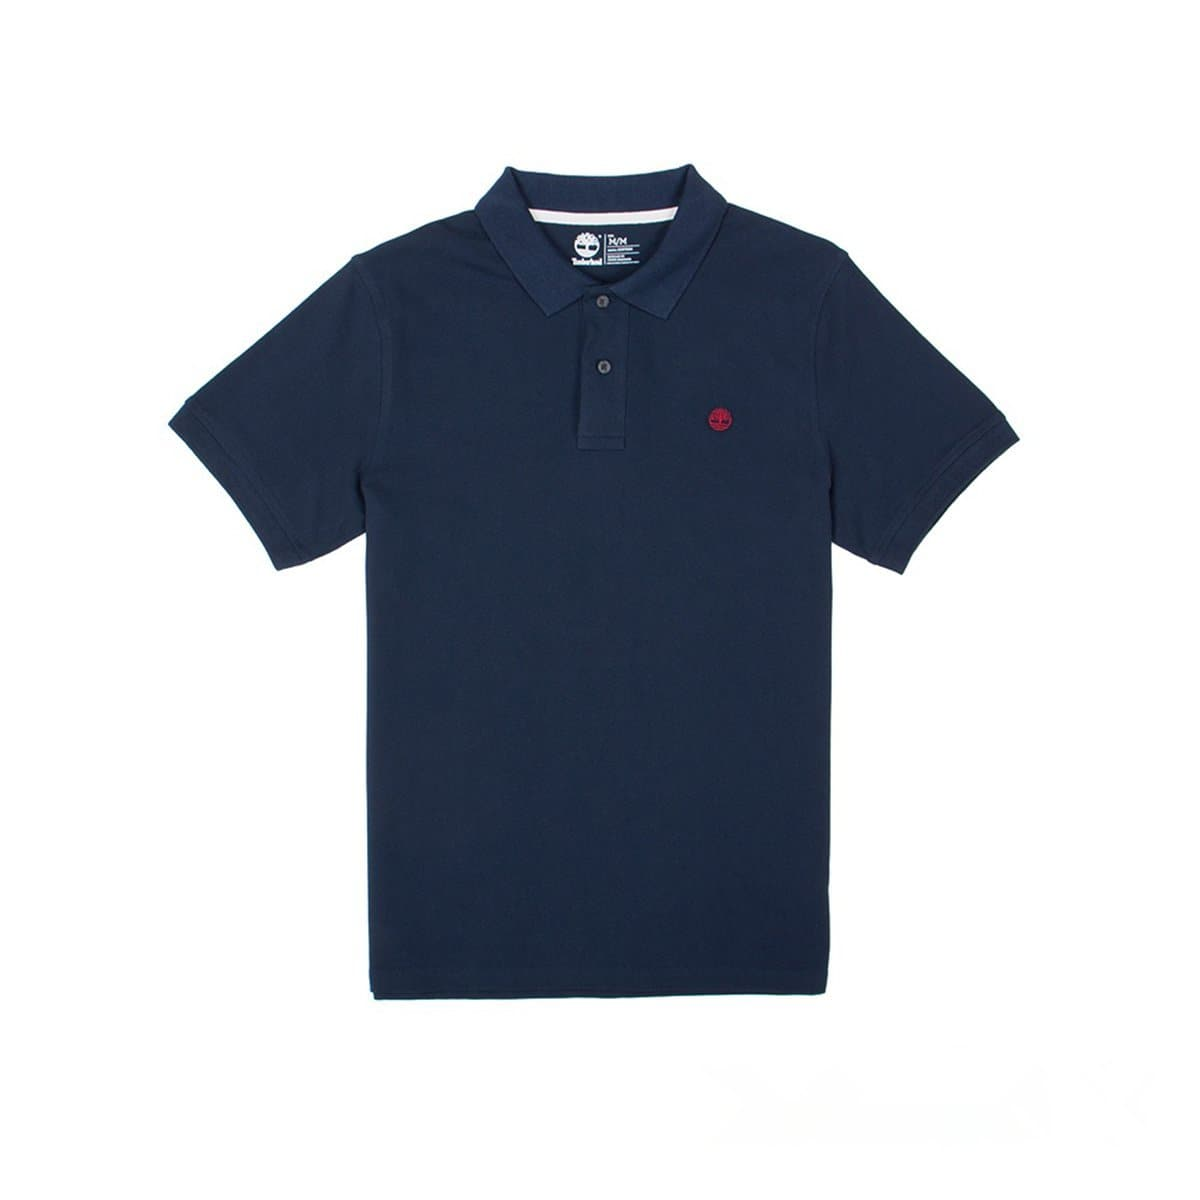 M Top | SS Millers River Pique Reg Polo